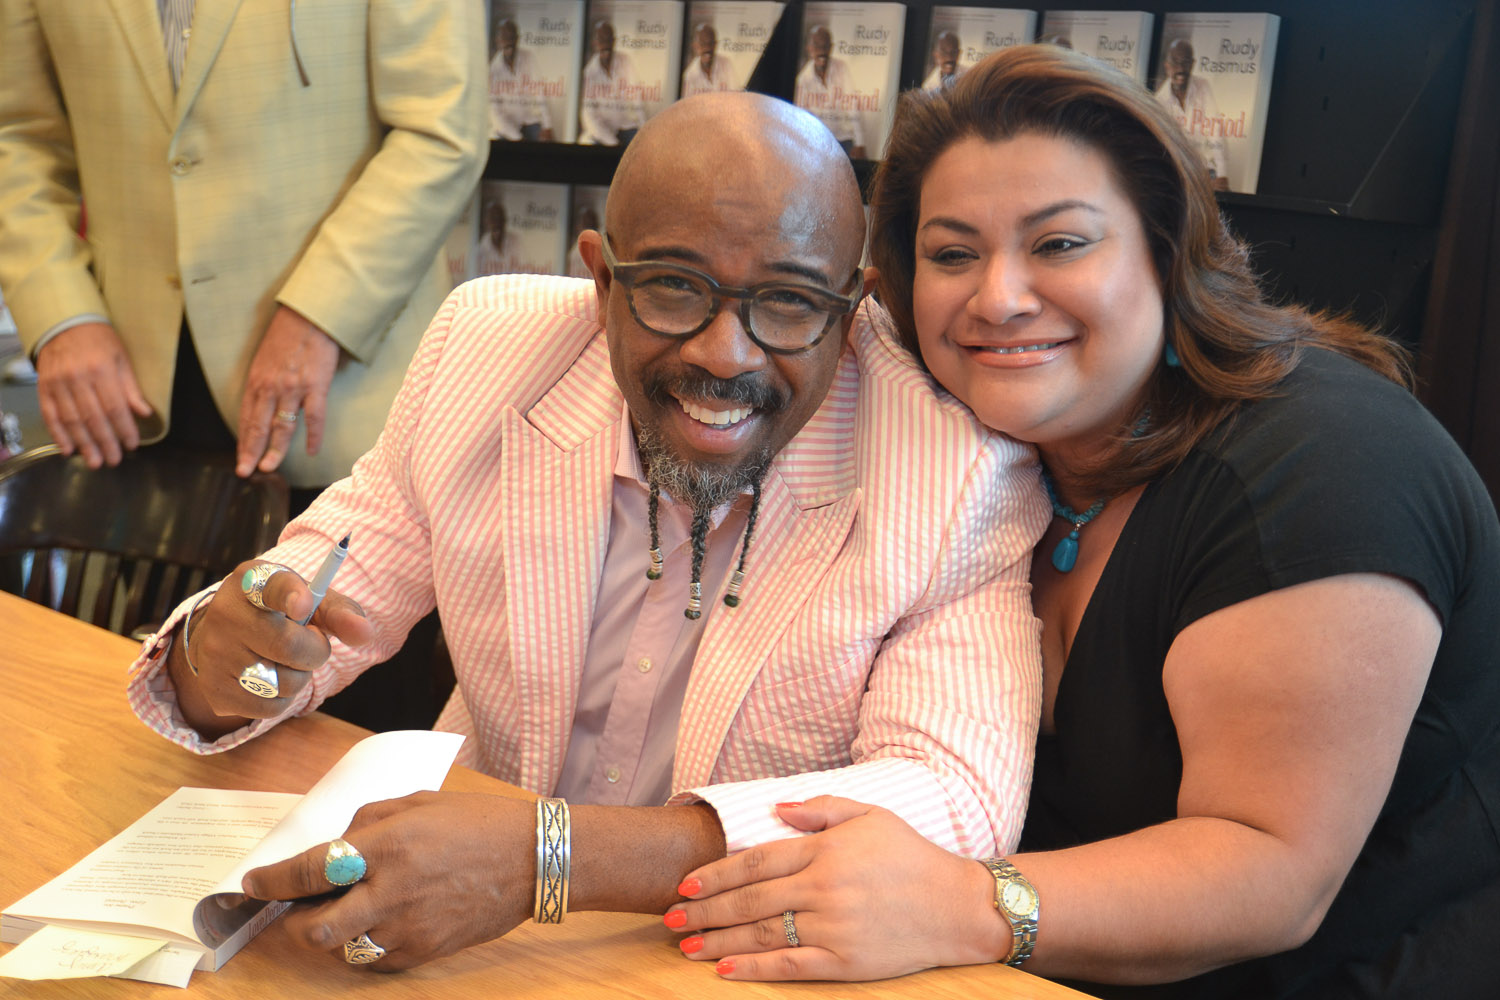 Paster Rudy book signing -0172.jpg